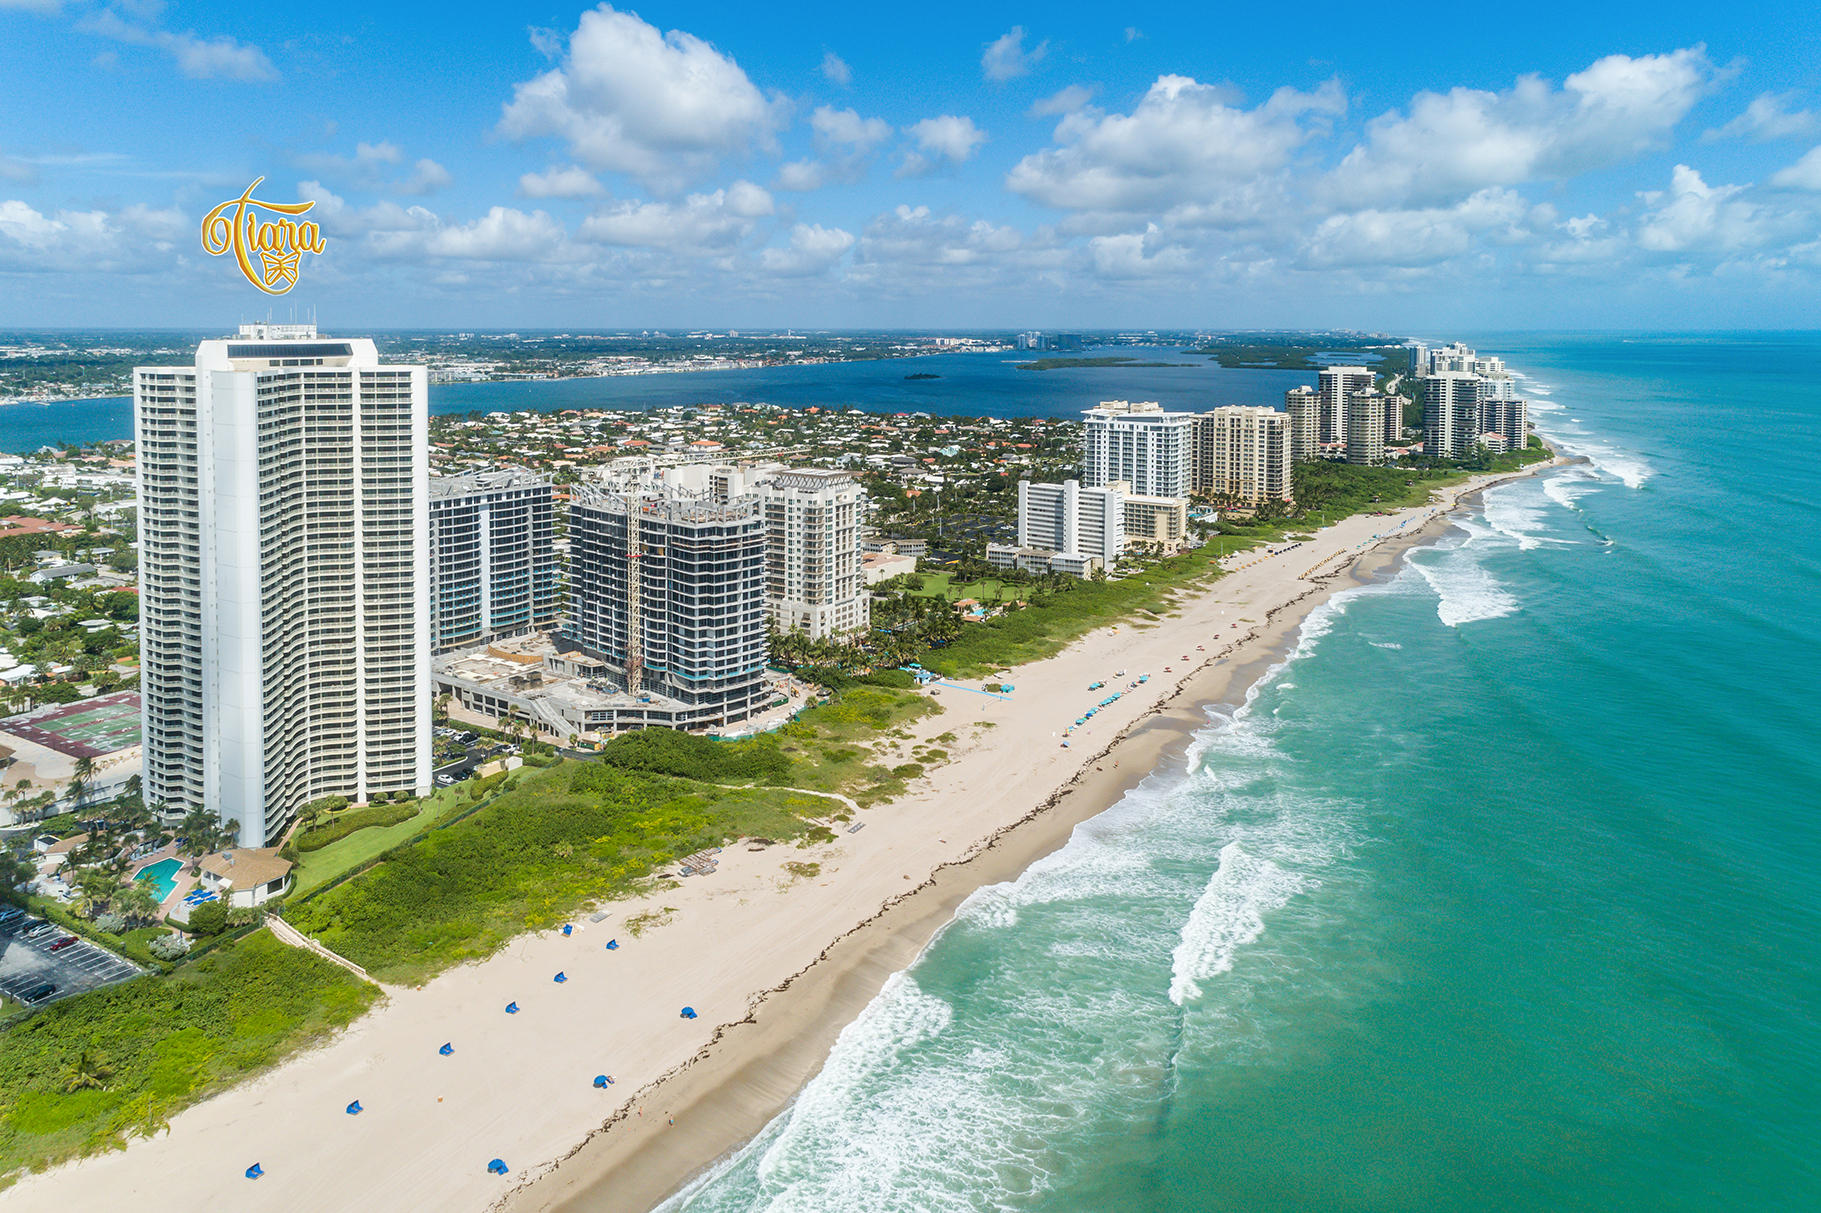 New Home for sale at 3000 North Ocean Drive in Singer Island